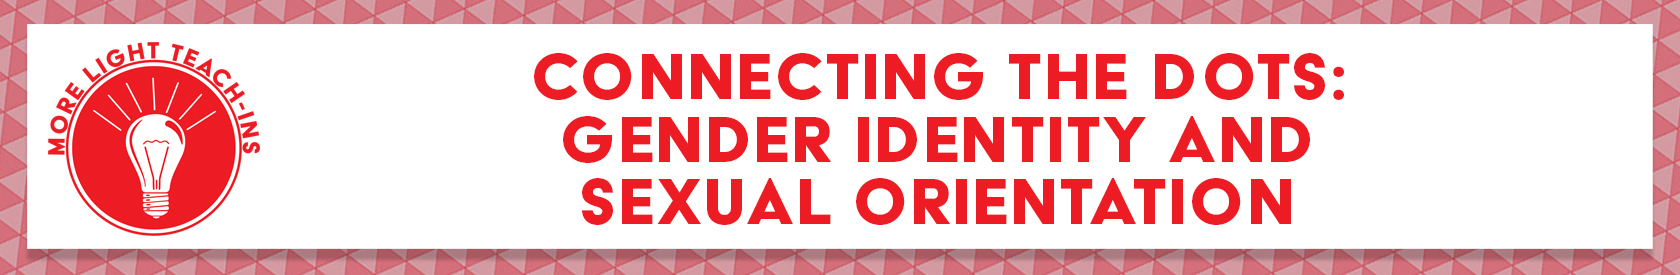 Connecting the Dots: Gender Identity and Sexual Orientation